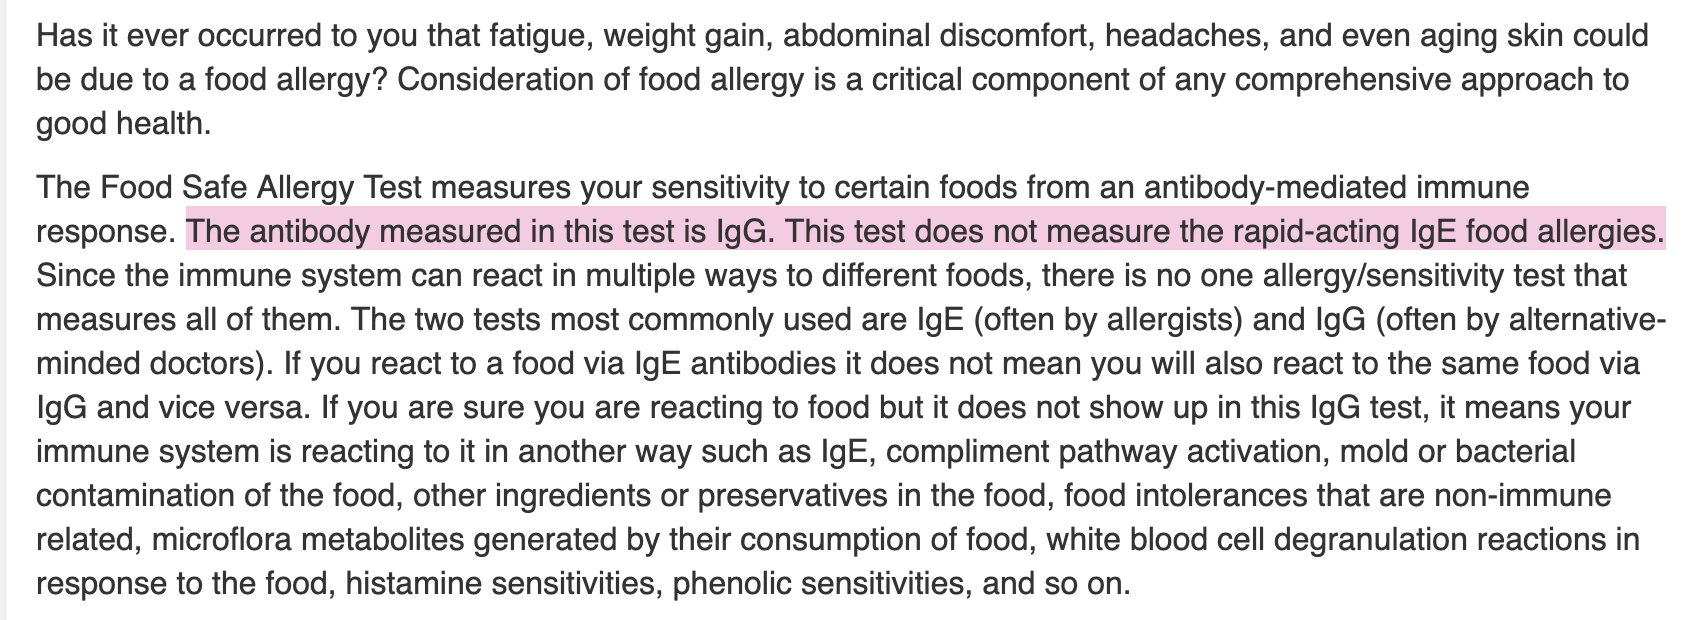 When reading the fine print, you can see it measures IgG antibodies rather than IgE antibodies.